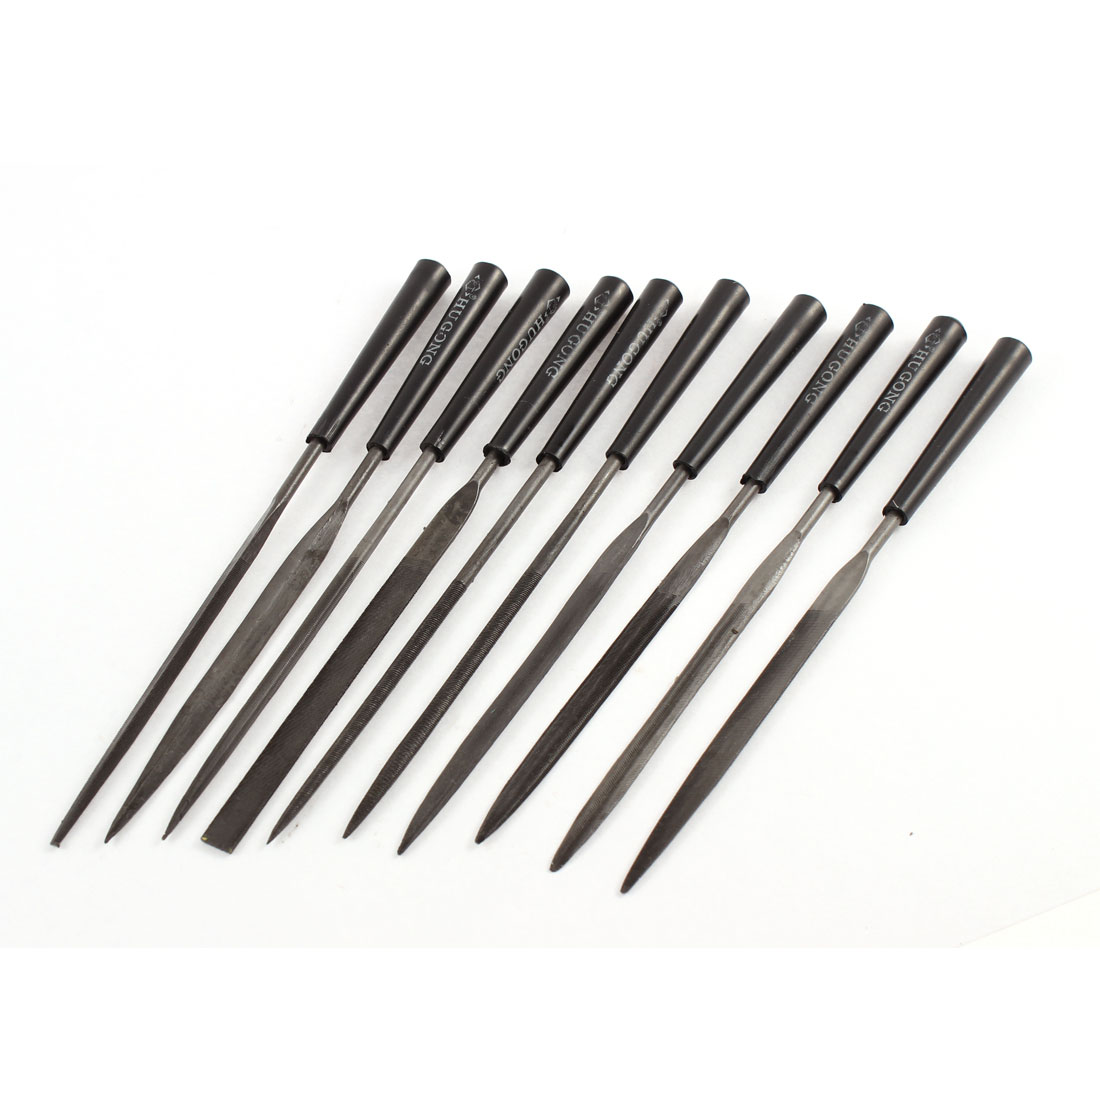 10 Pcs Metal Hobby Jewellers Repair Tools Precision Needle File Set 3 x 145mm